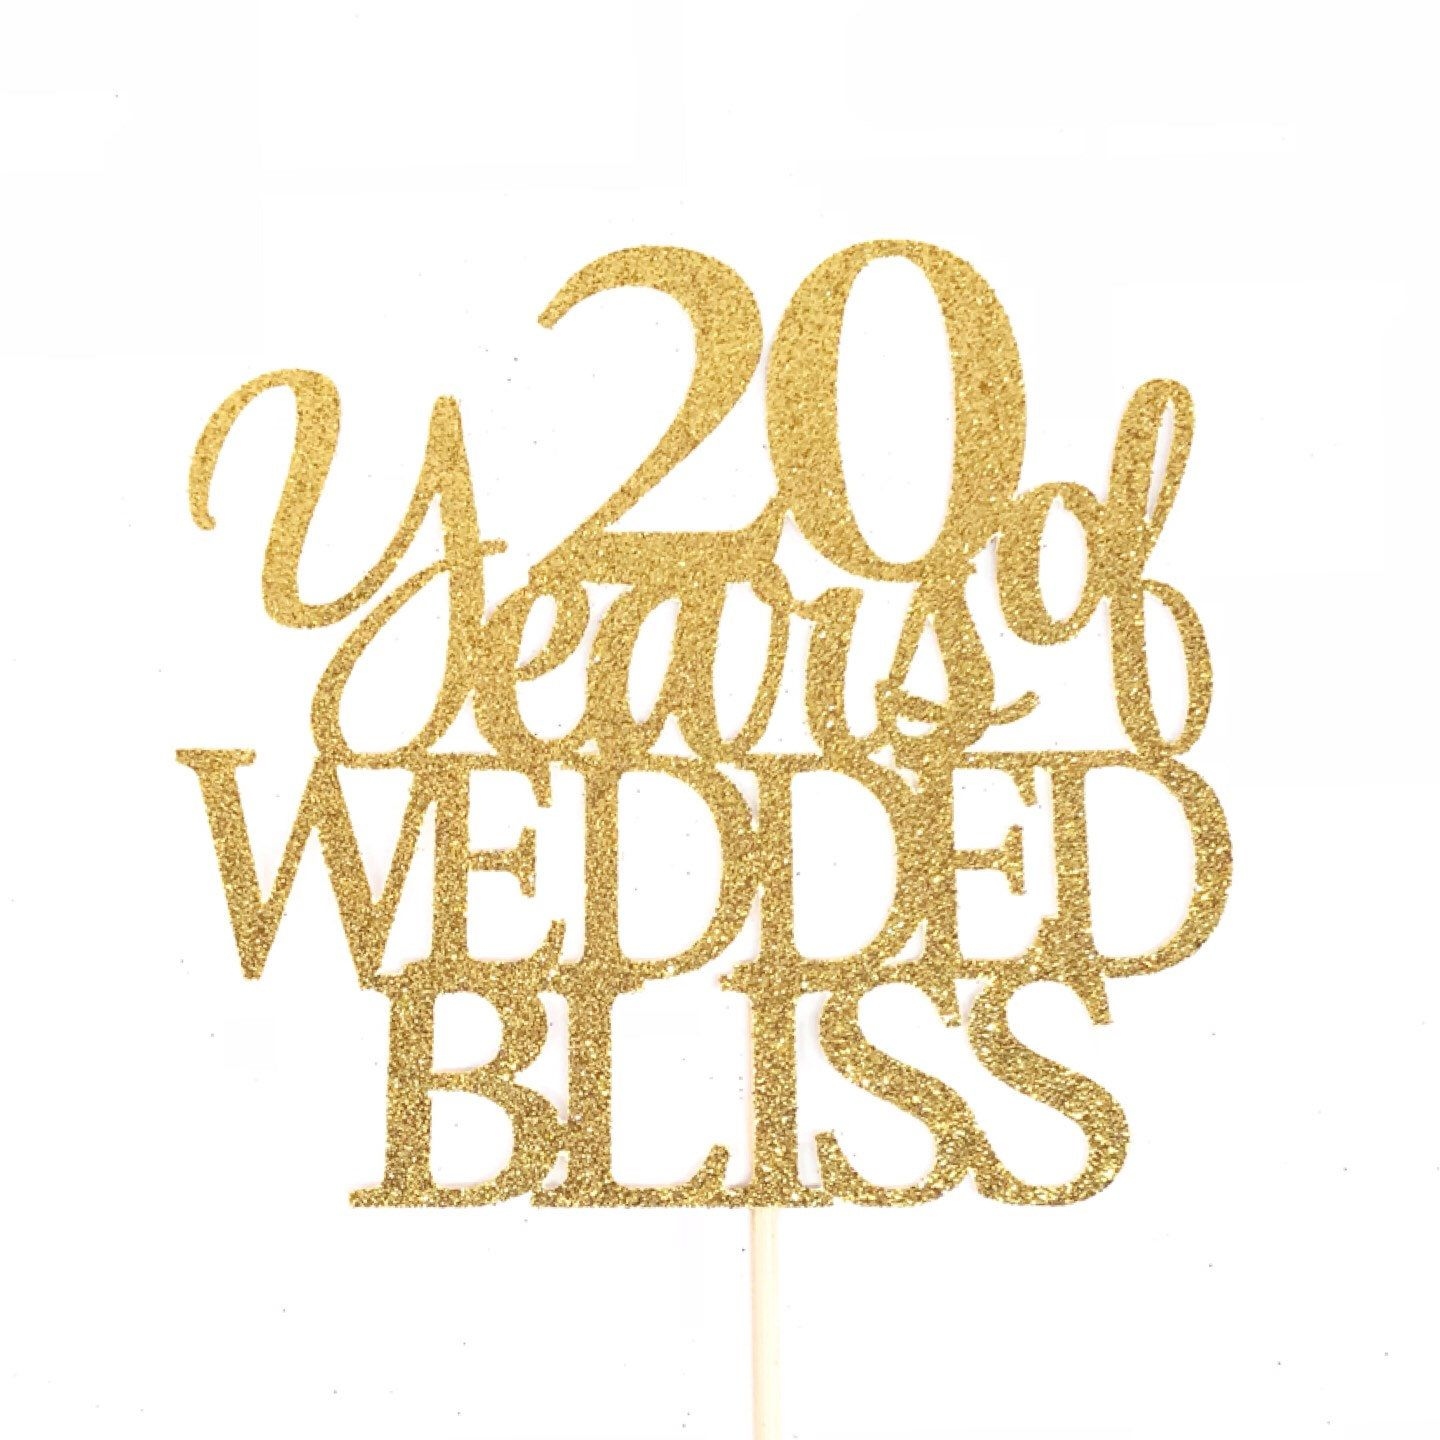 20 Years of Wedded Bliss Cake Topper, 20th Anniversary